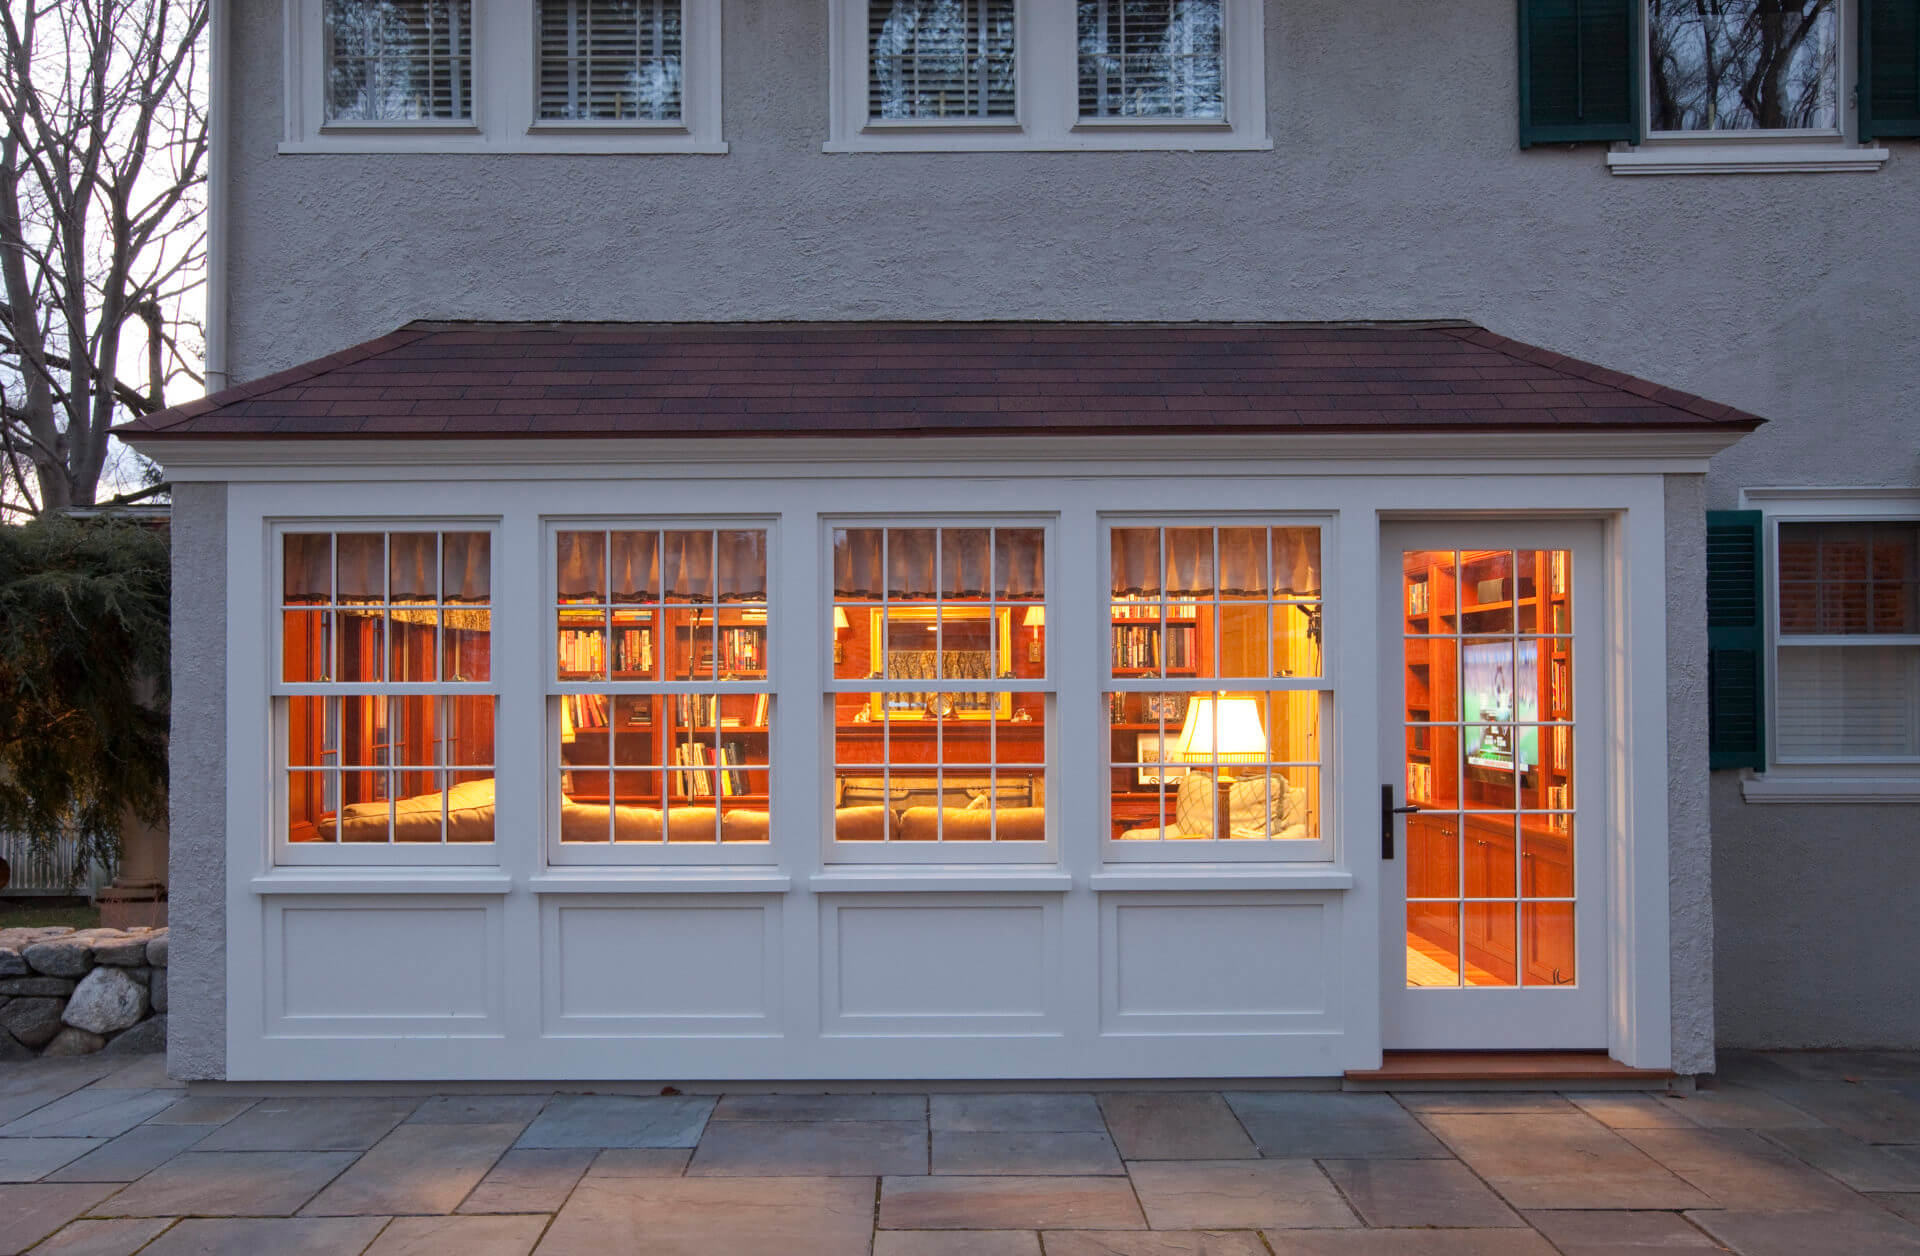 Family Library, Winchester